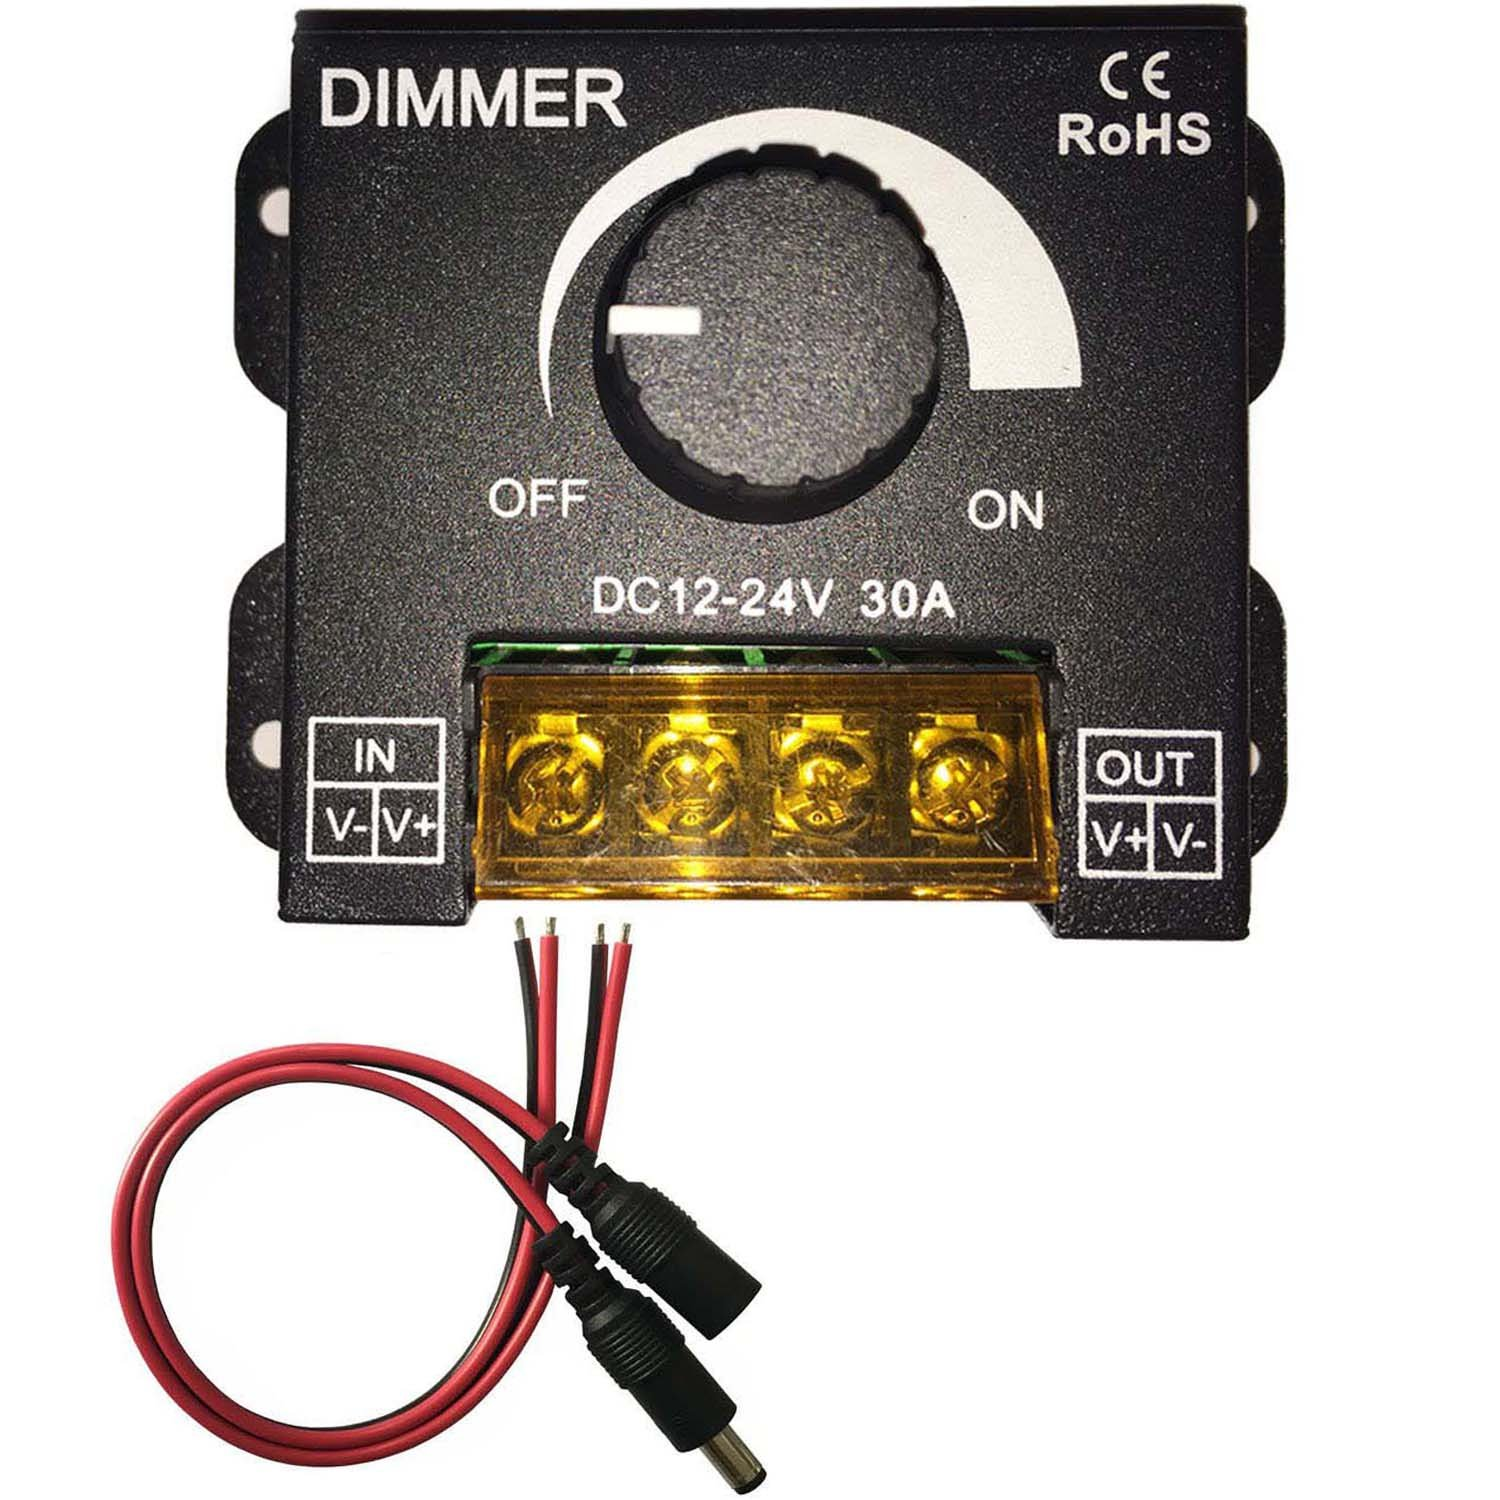 Kabenjee DC 12~24V PWM Dimmer Switch Knob ON/OFF Switch with Black Aluminum Housing,Full Range 0~100% Dimming,Max 30A/720W for LED Strip Lights,Christmas LED Light Decoration Dimmer Switch(Style-A)